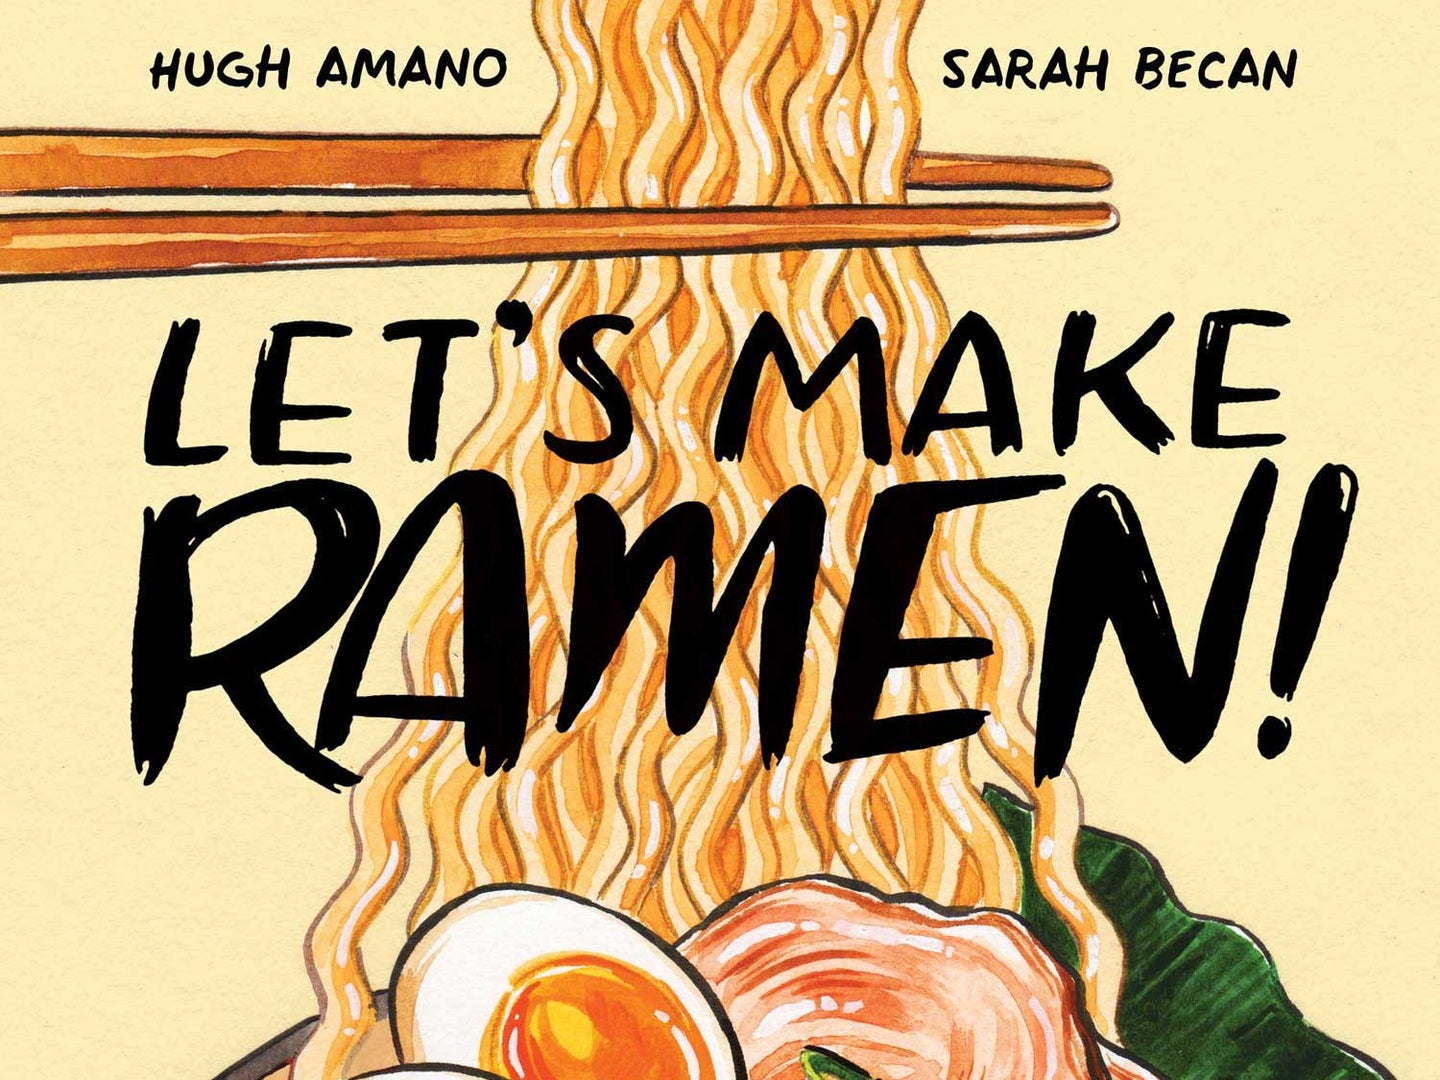 Hugh Amano and Sarah Becan's Let's Make Ramen! is a cookbook in comic book form—the perfect way to demystify everything from the history to the step-by-step preparation of authentic Japanese ramen.